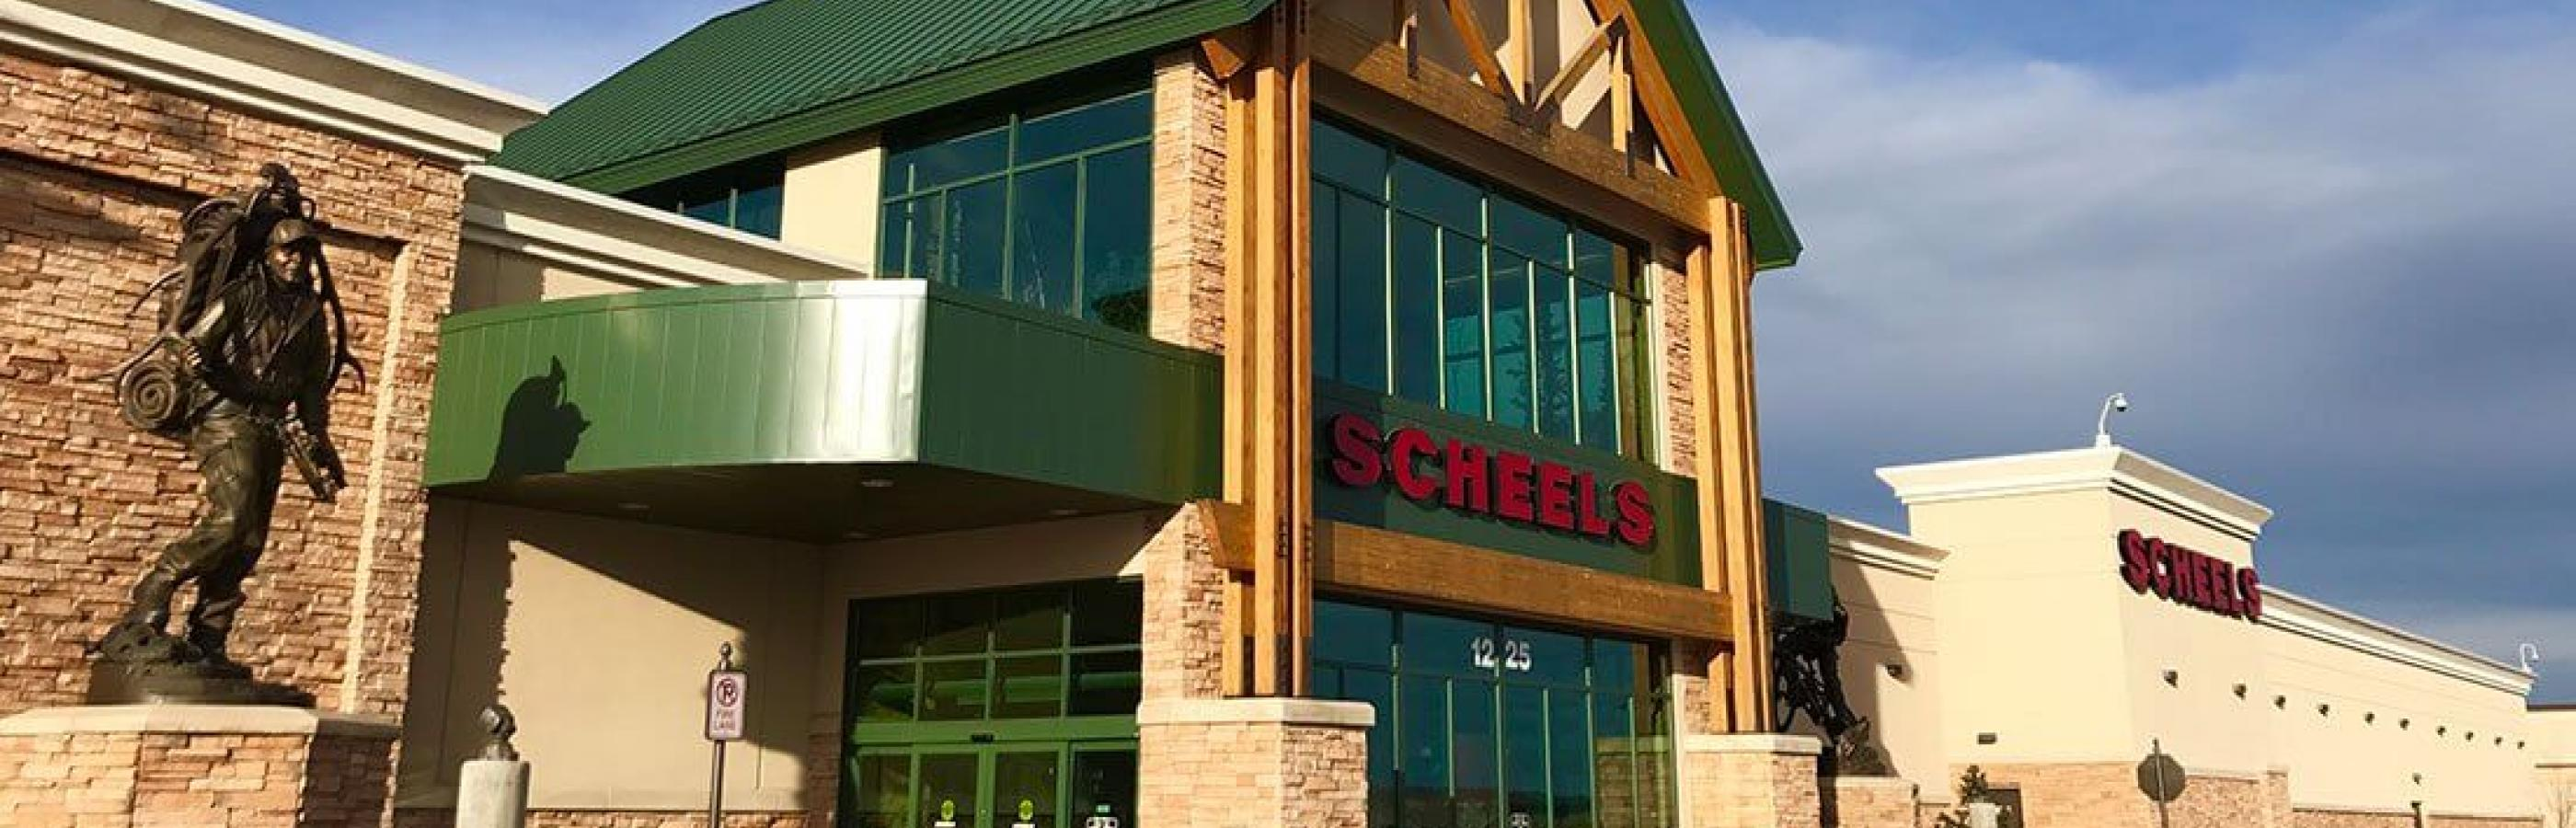 Scheels Rapid City Storefront